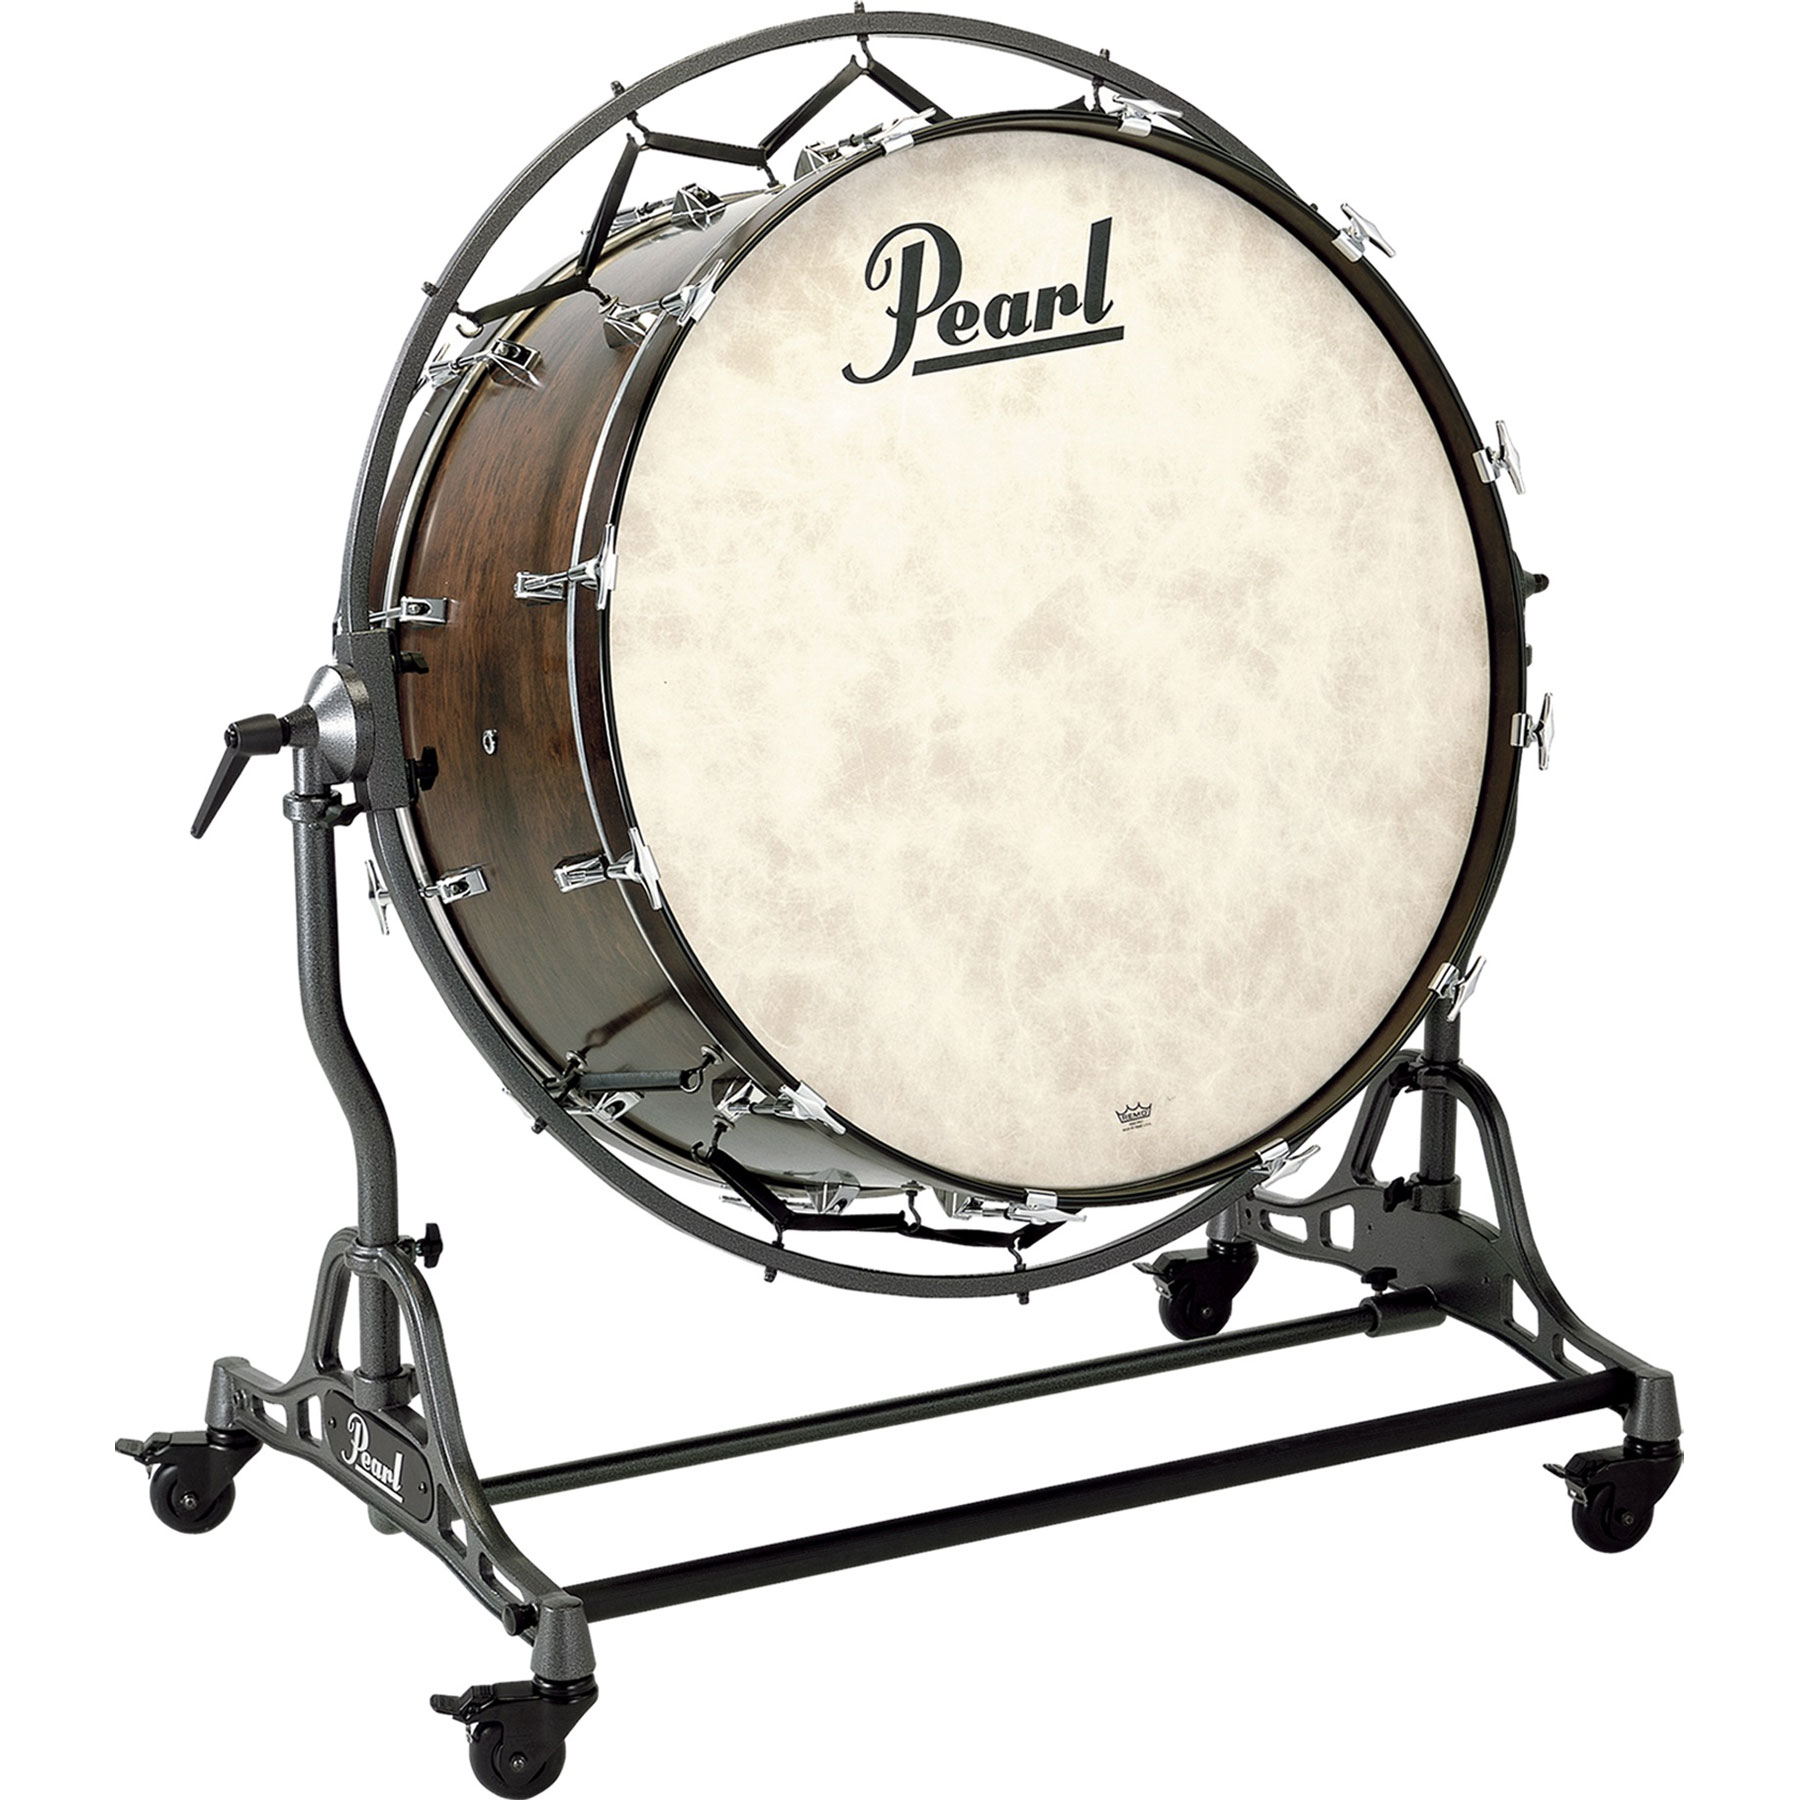 "Pearl 36"" (Diameter) x 16"" (Deep) Philharmonic African Mahogany Concert Bass Drum with STBD Stand"